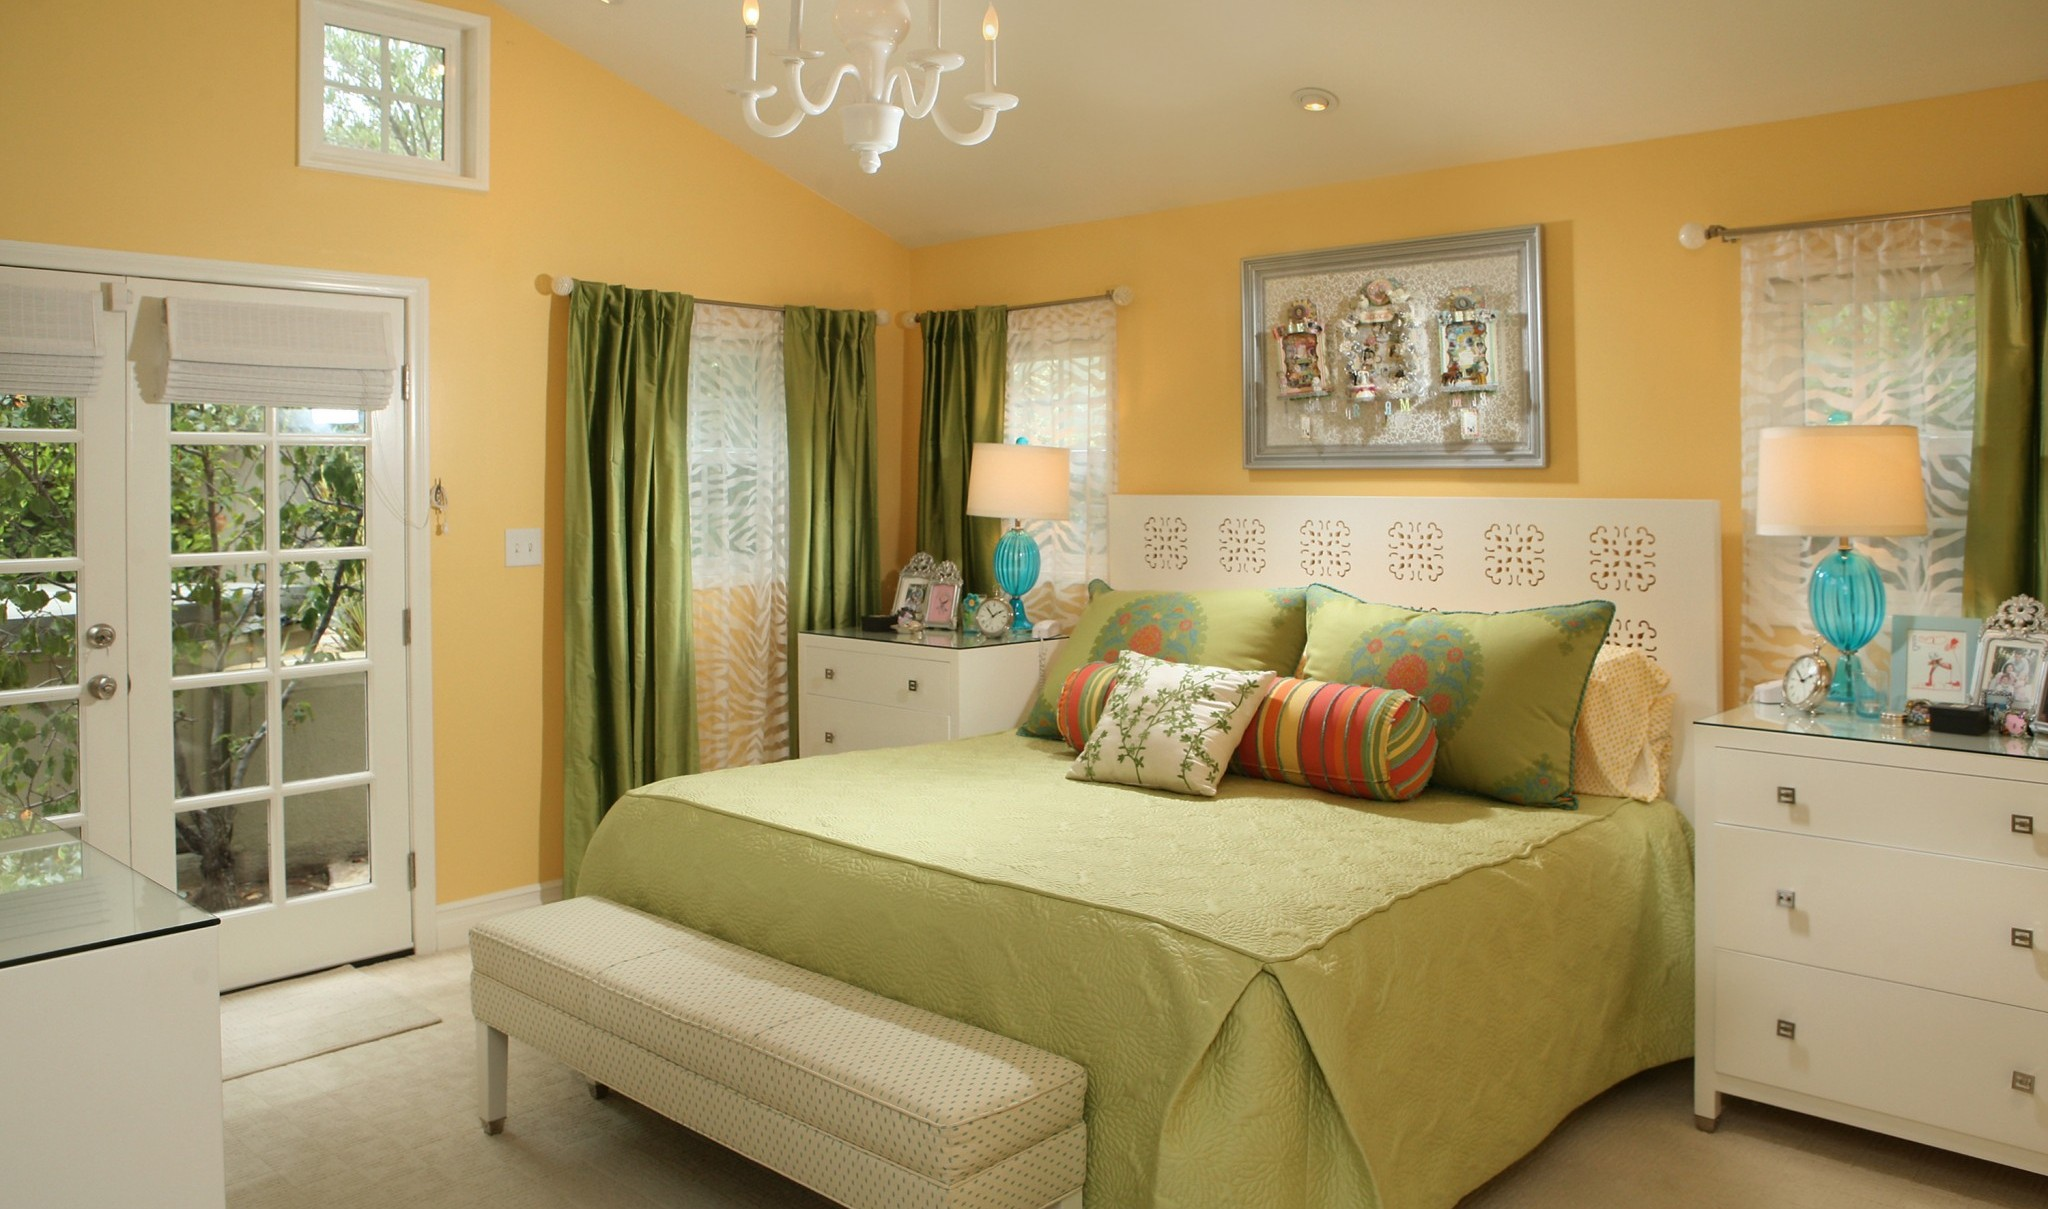 Ordinaire Adorable Bedroom With Best Color Paint For Small Room Of Orange And Green  With Comfortable Bedding